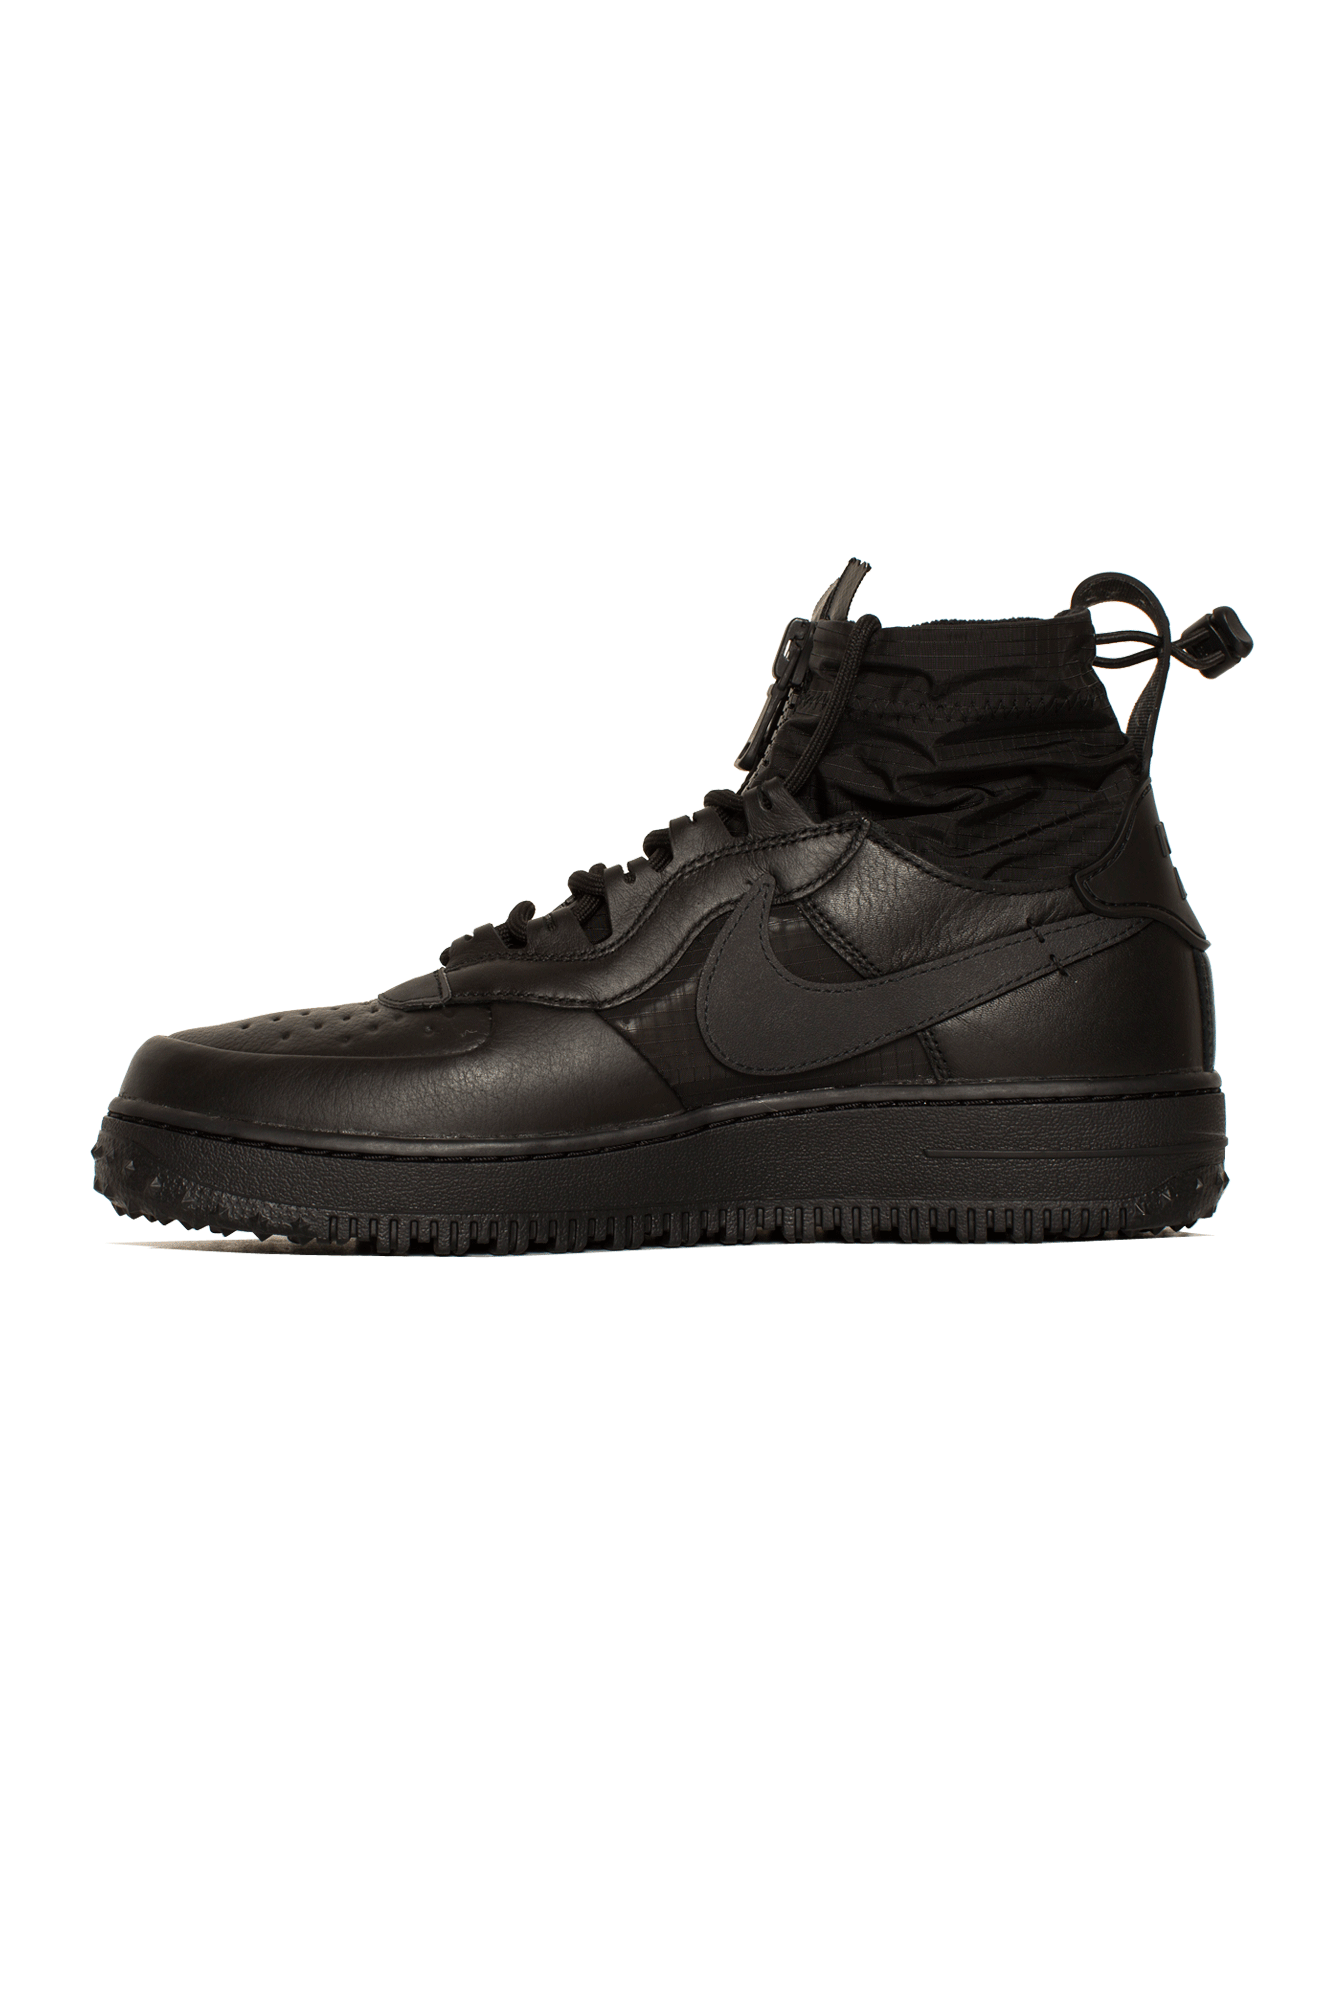 Air Force 1 Winter Gore-Tex Black